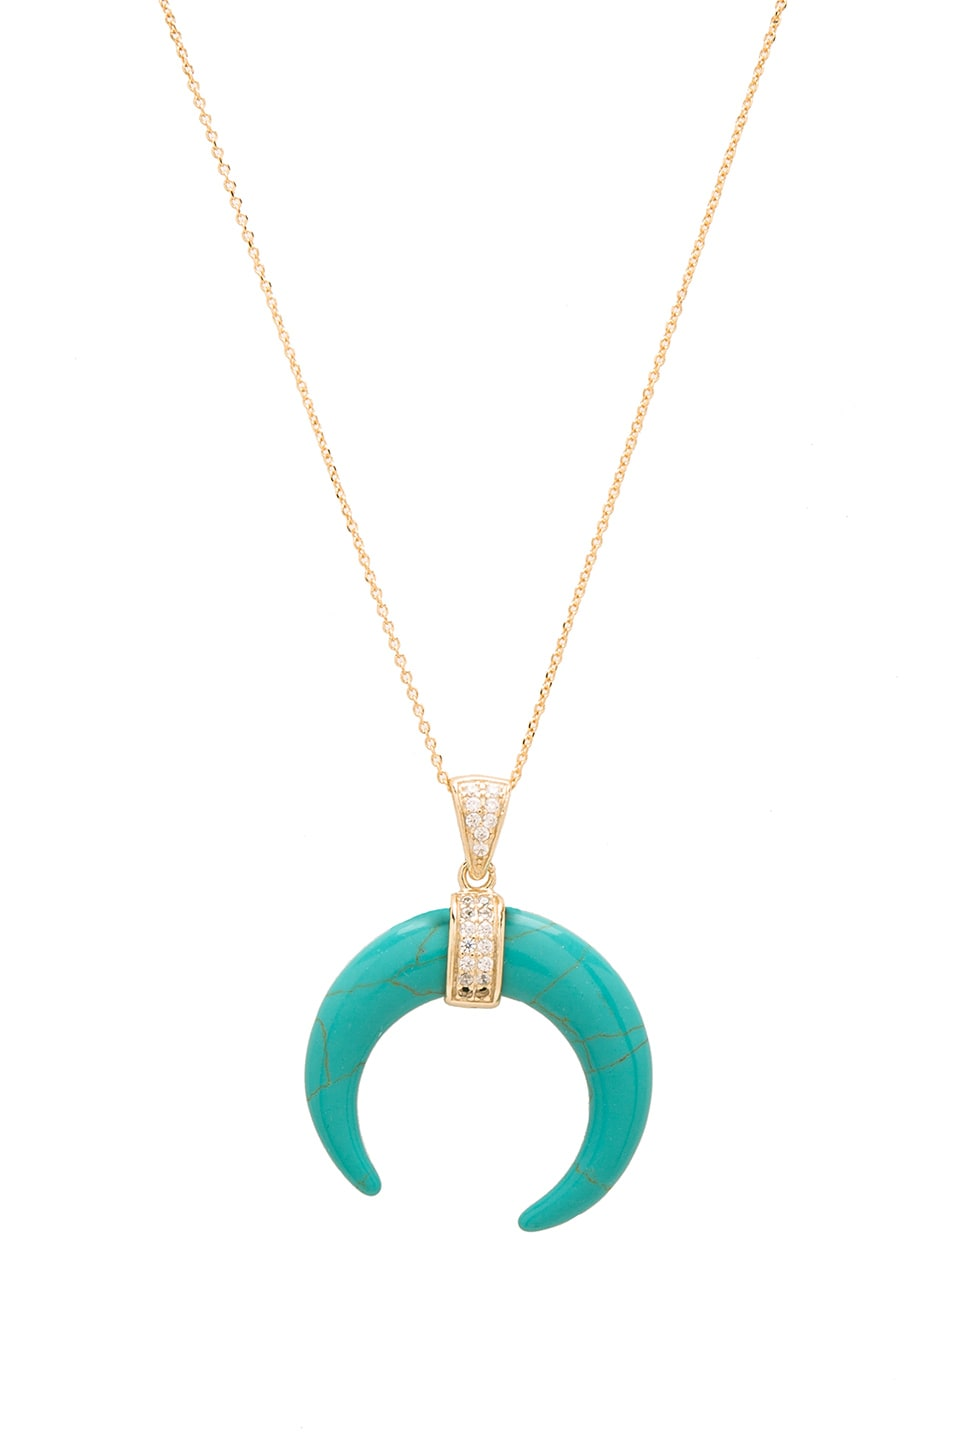 joolz by Martha Calvo Turquoise Crescent Moon Necklace in Gold